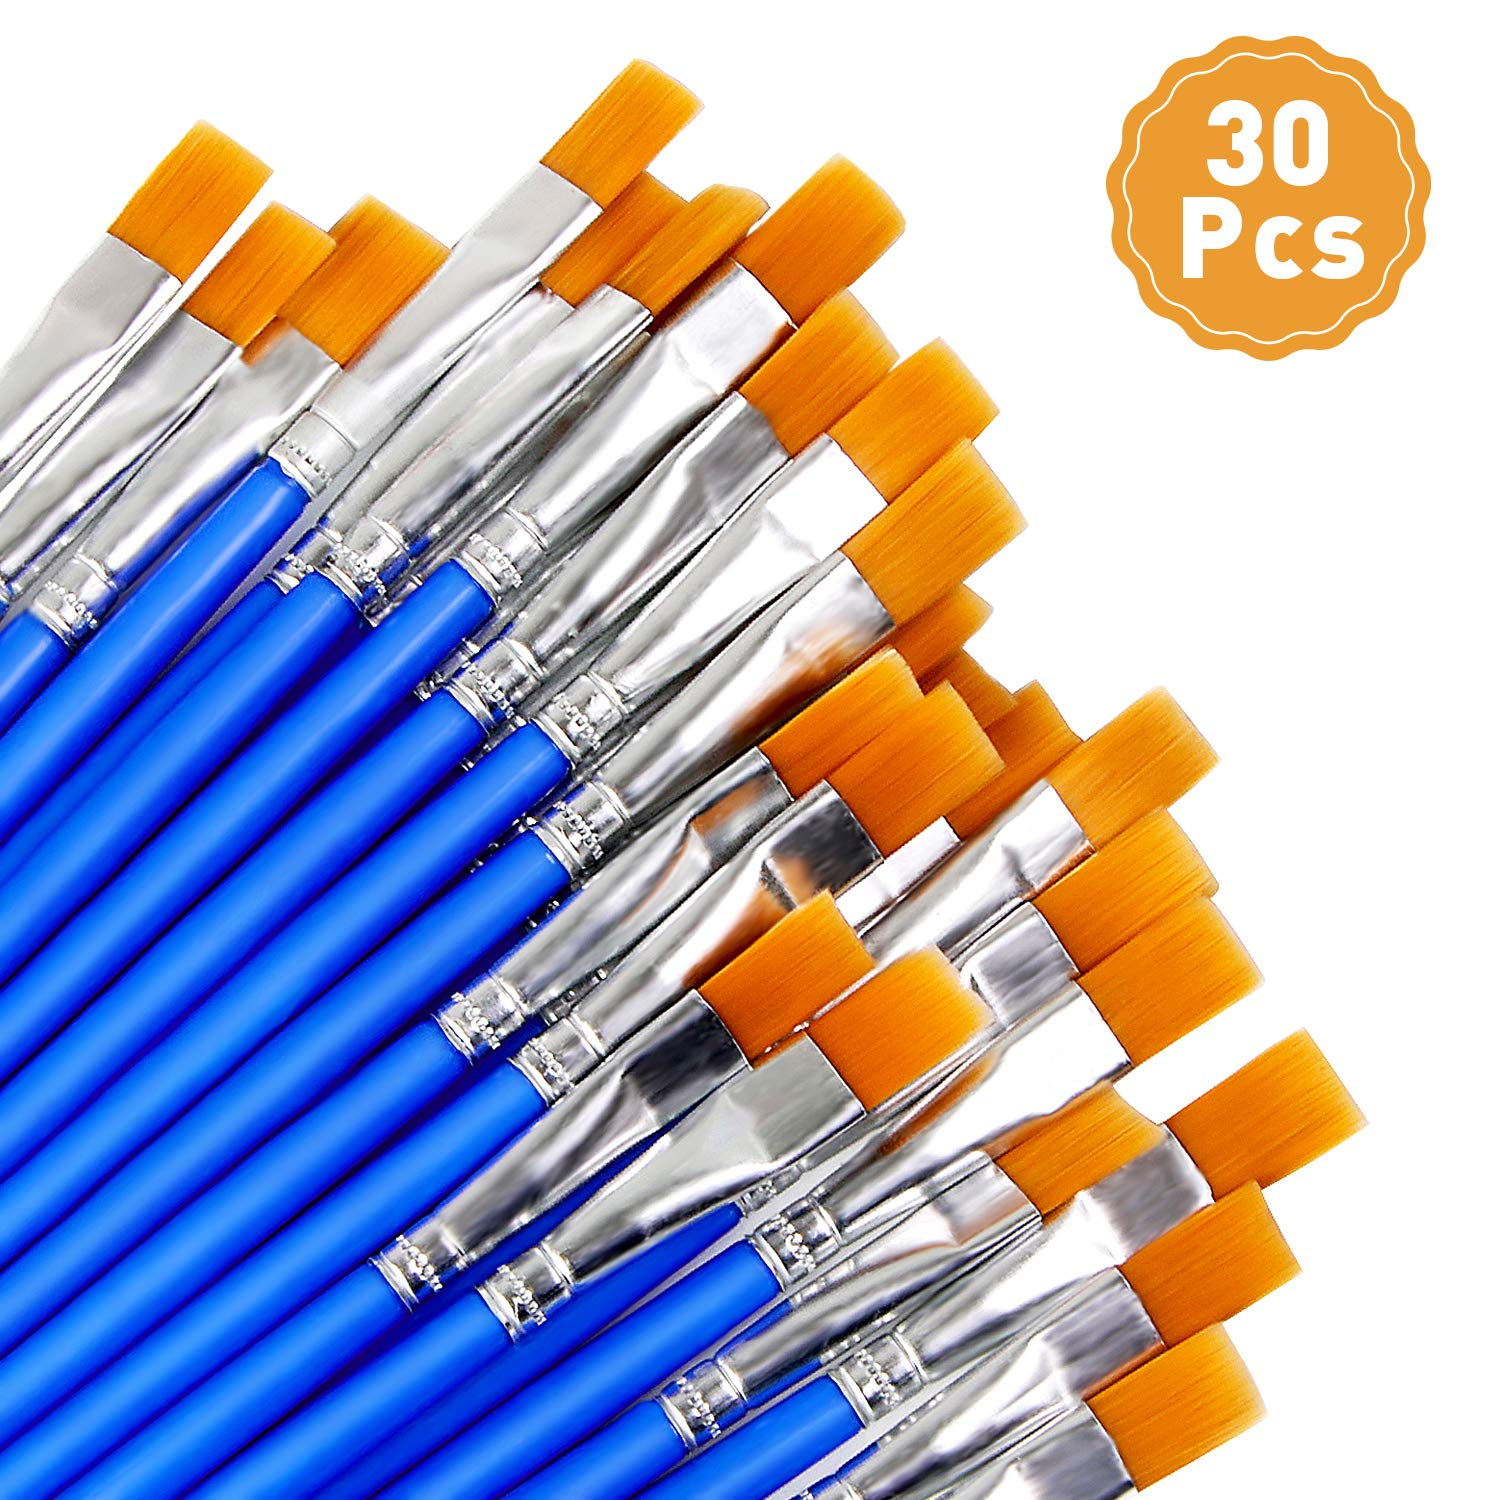 30 Pcs 9mm Wide Flat Paint Brushes, Acrylic Small Brush Bulk for Detail Painting